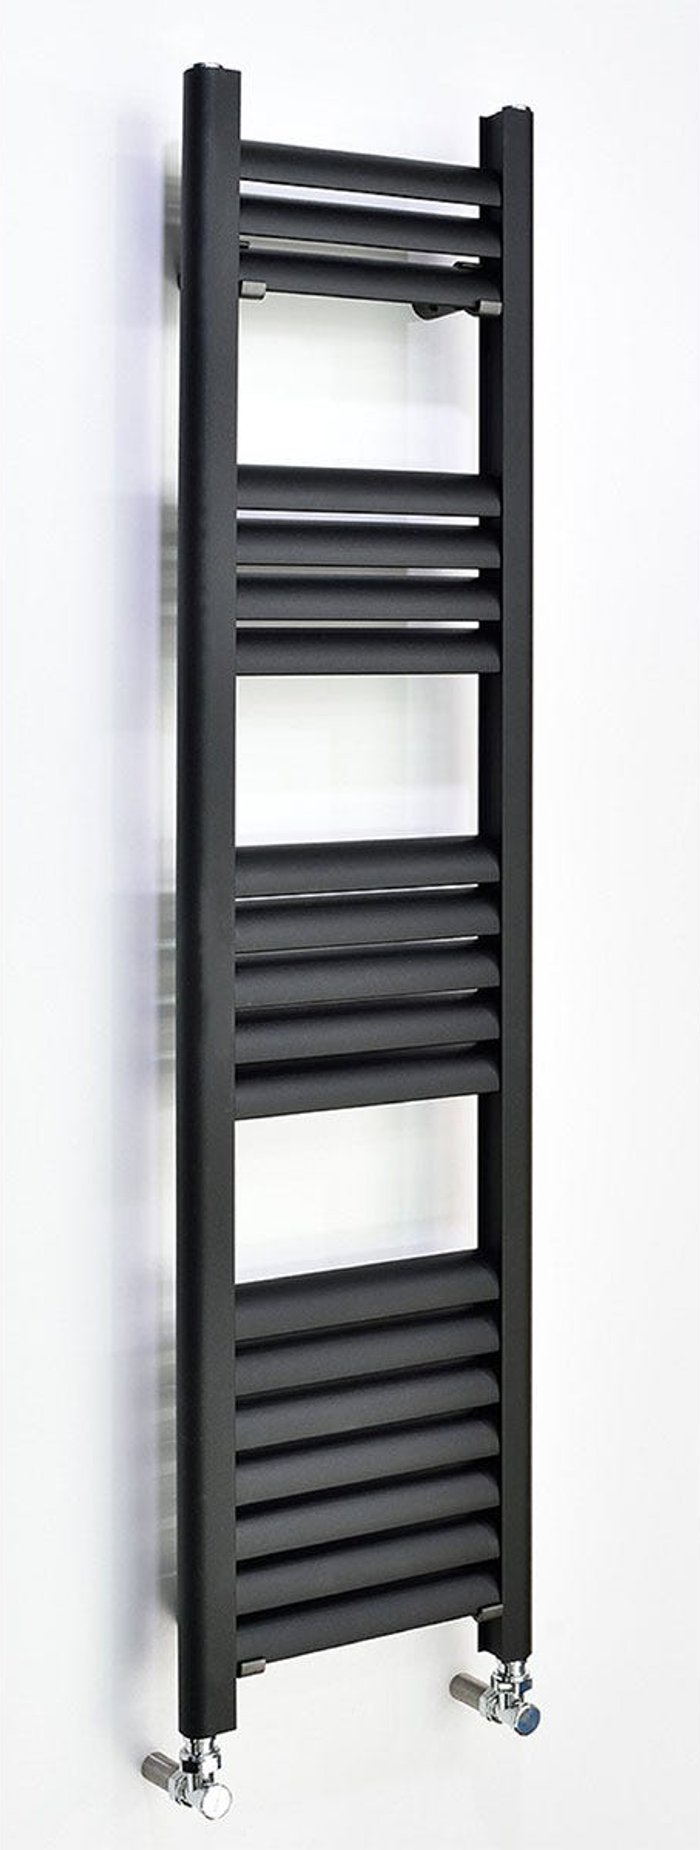 Towelrads Towelrads Accuro Korle Champagne 1000mm x 300mm Aluminium T/Warmer - Anthracite